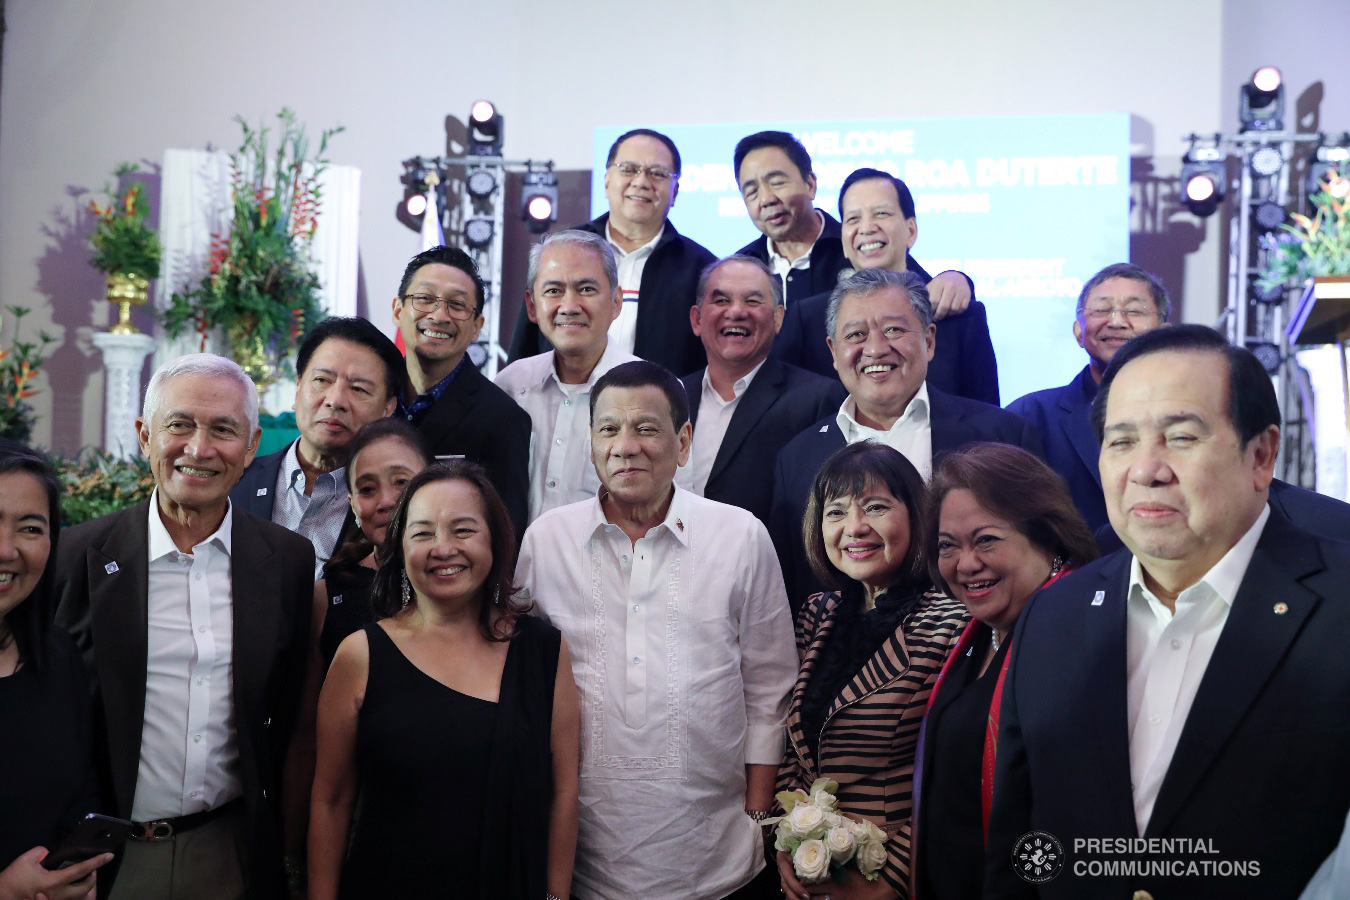 President Rodrigo Roa Duterte poses for posterity with House Speaker Gloria Macapagal-Arroyo and some of the guests during the appreciation dinner for the House Speaker at The Manila Hotel on July 9, 2019. VALERIE ESCALERA/PRESIDENTIAL PHOTO